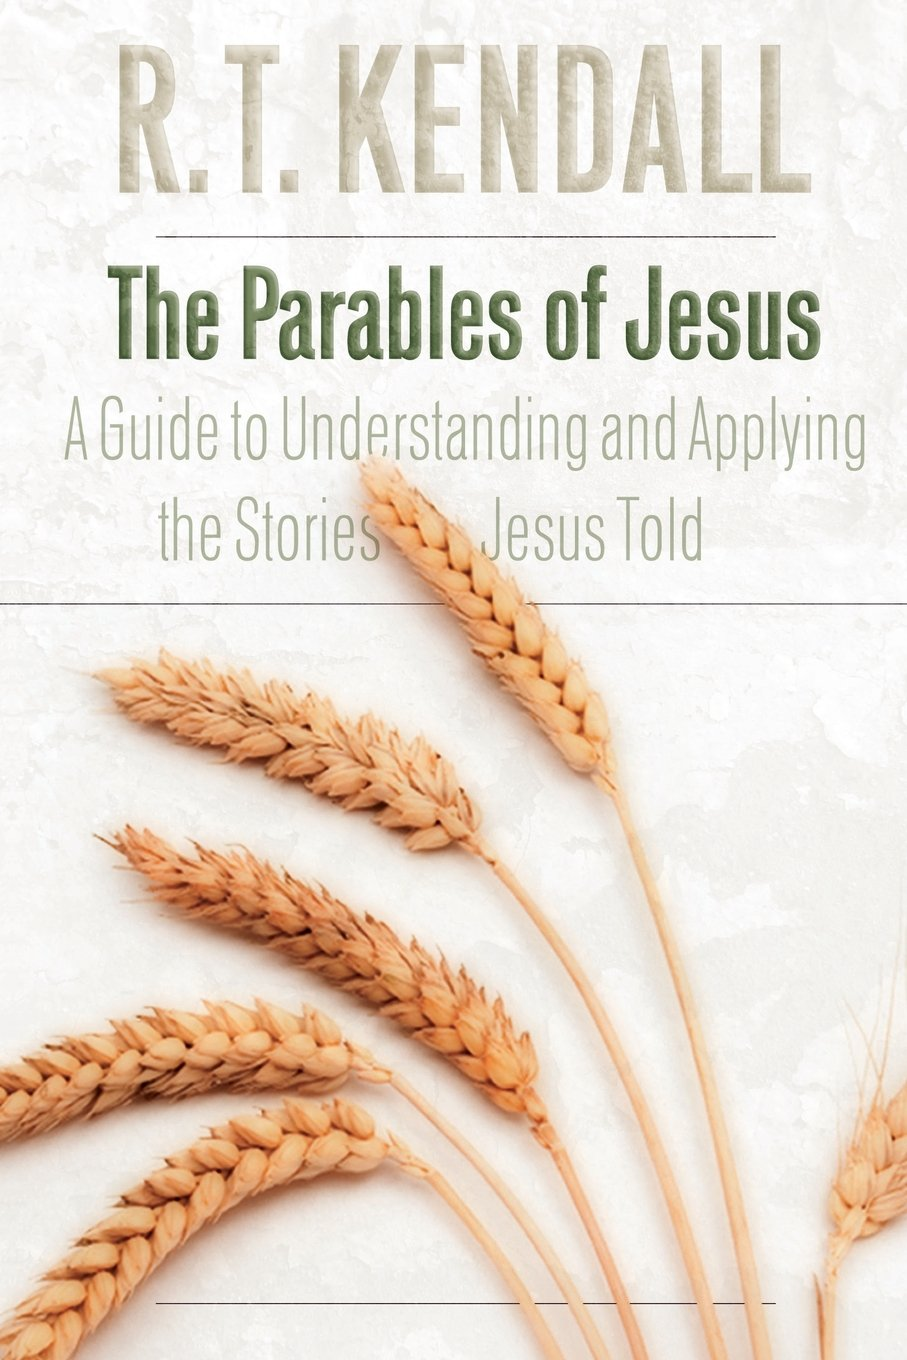 The Parables of Jesus: A Guide to Understanding and Applying the Stories Jesus Told pdf